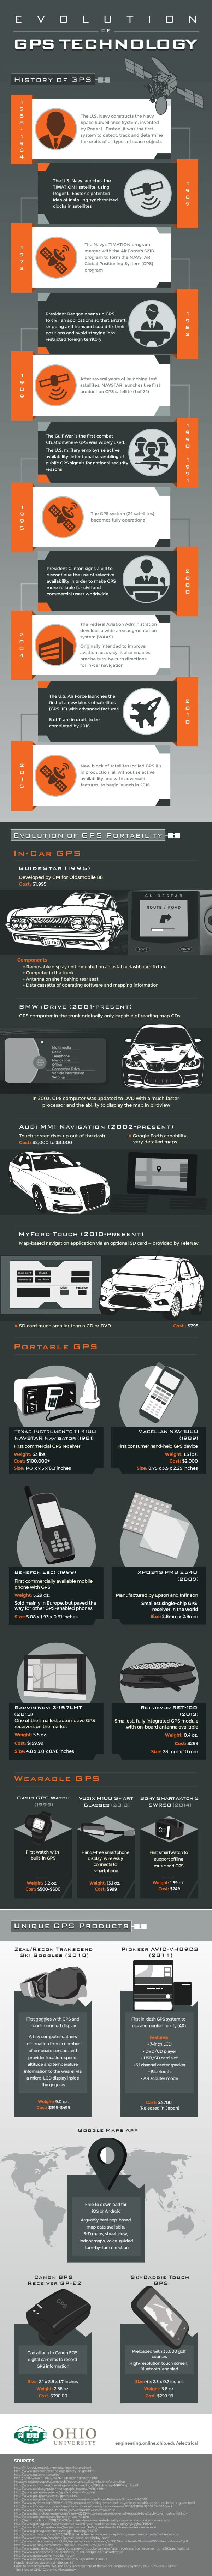 The Evolution of Portable GPS infographic